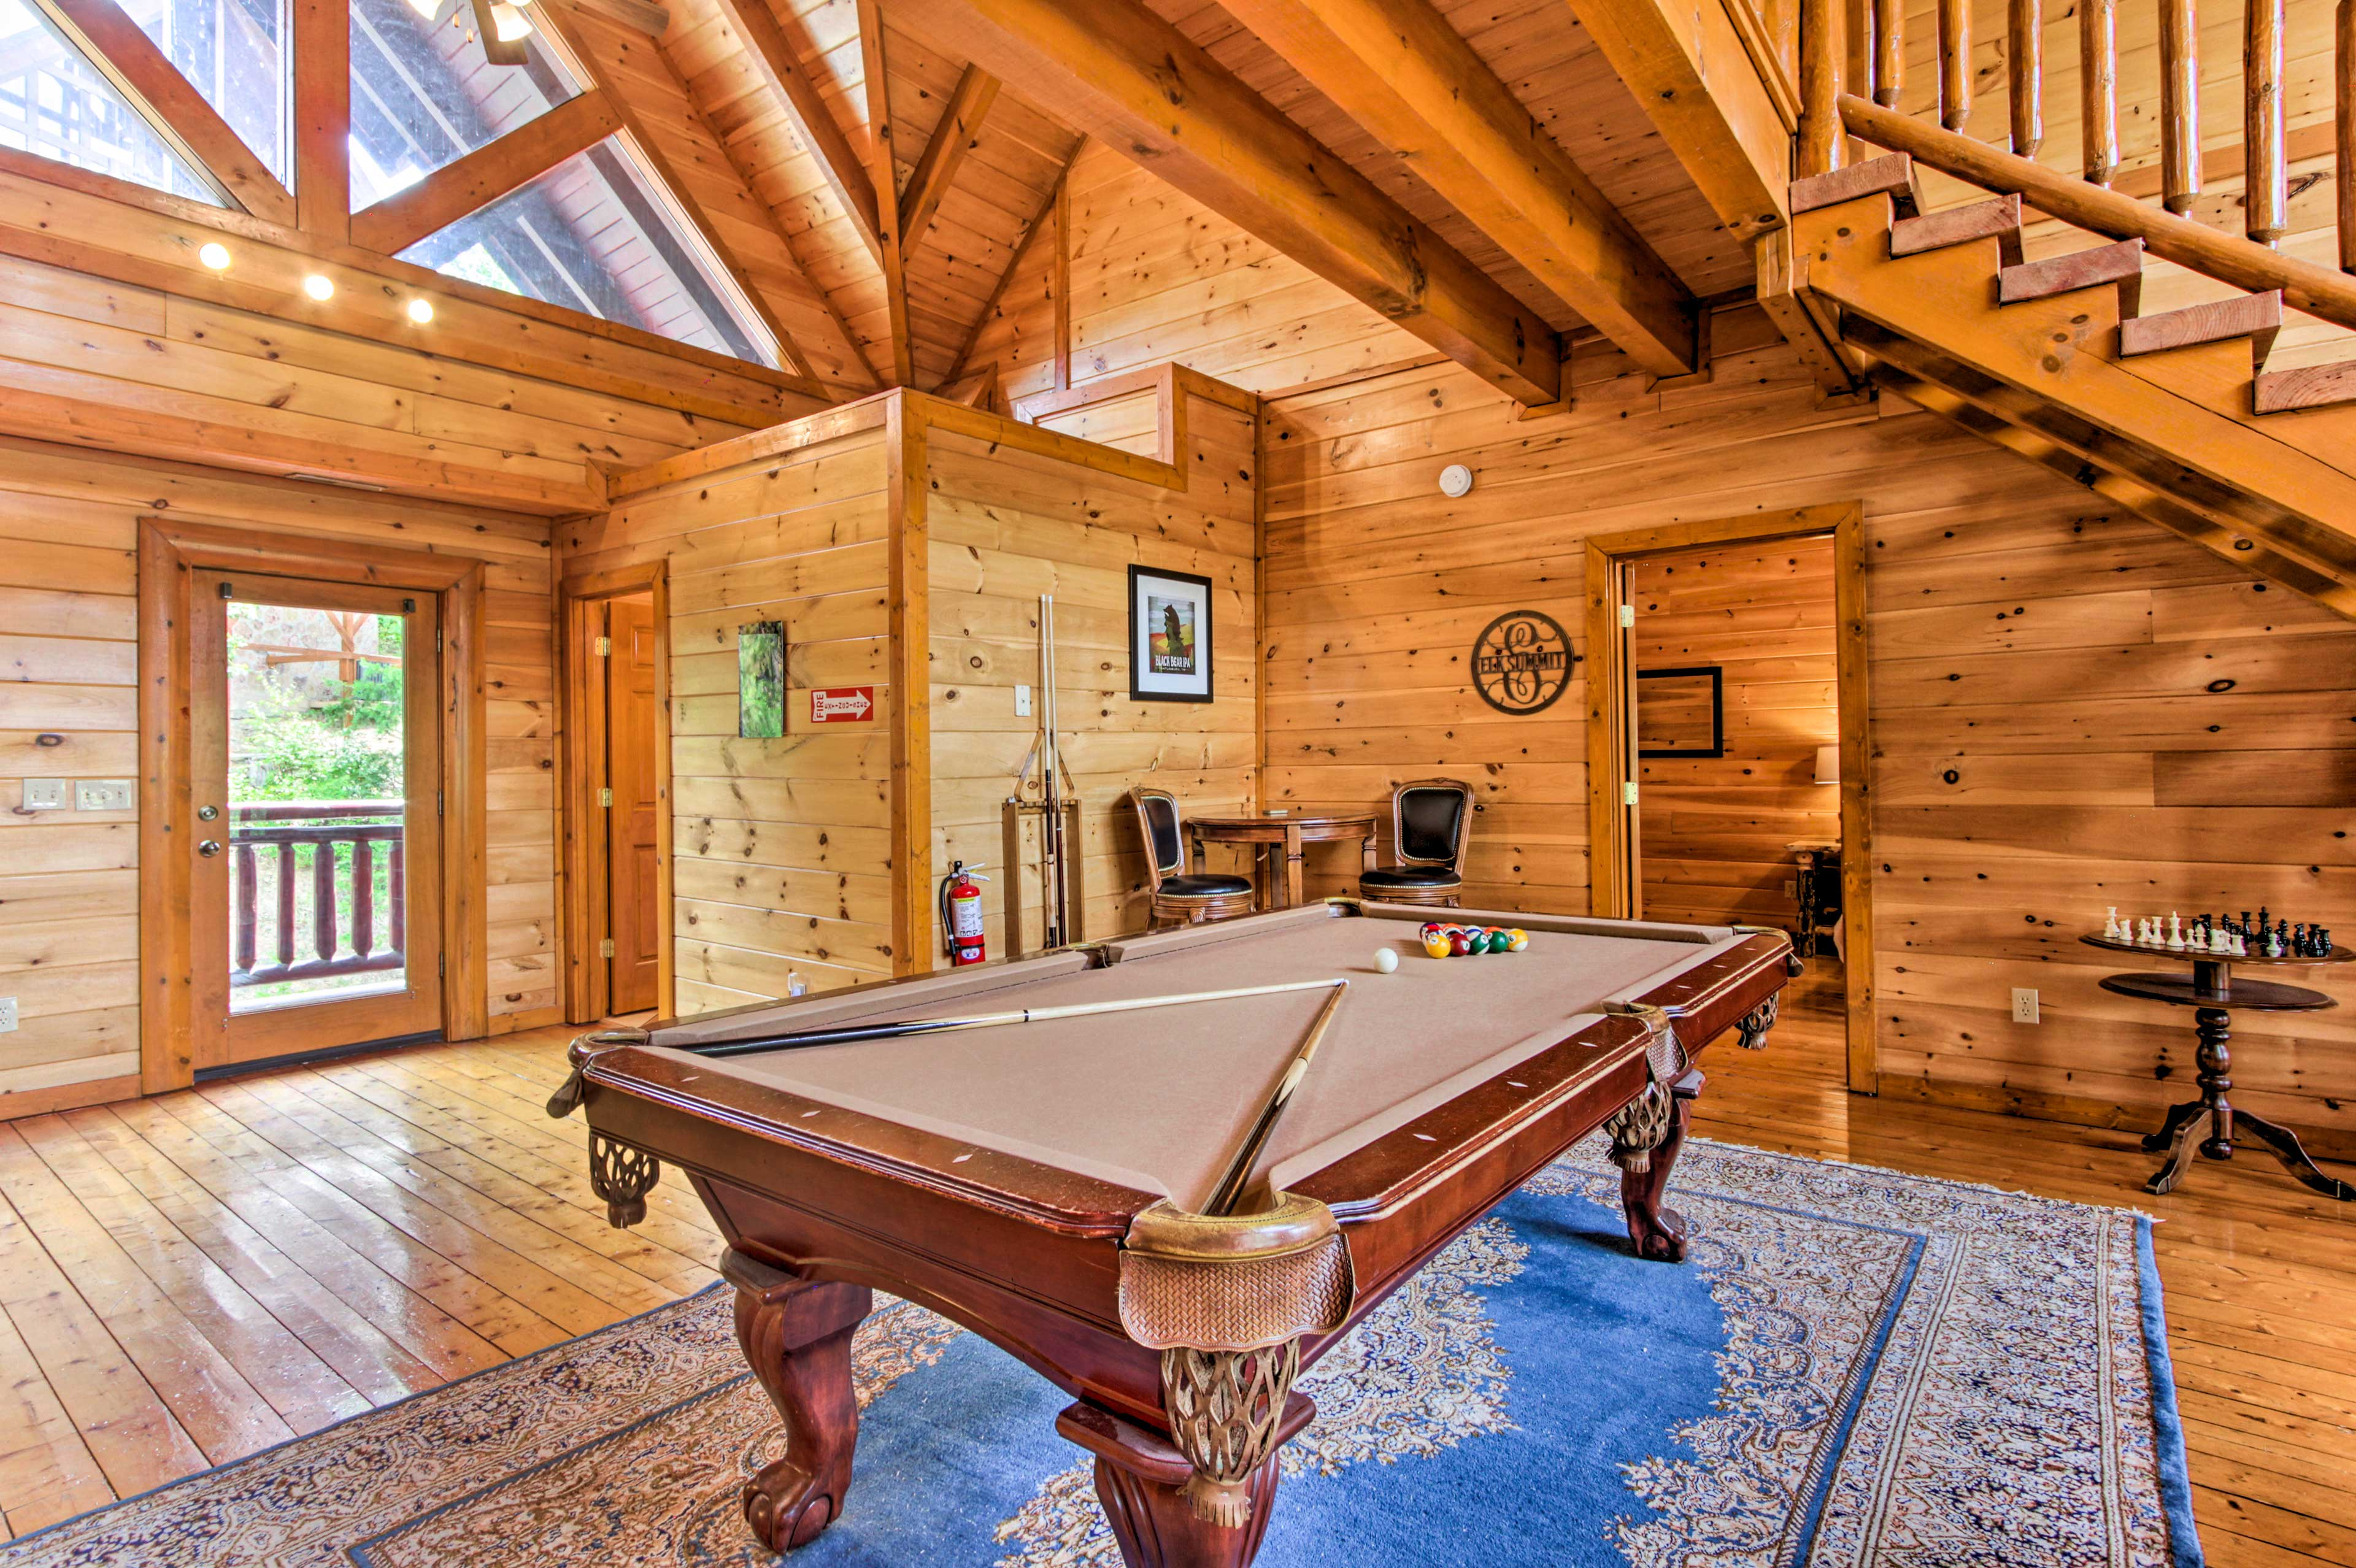 Challenge the family to a billiards competition.